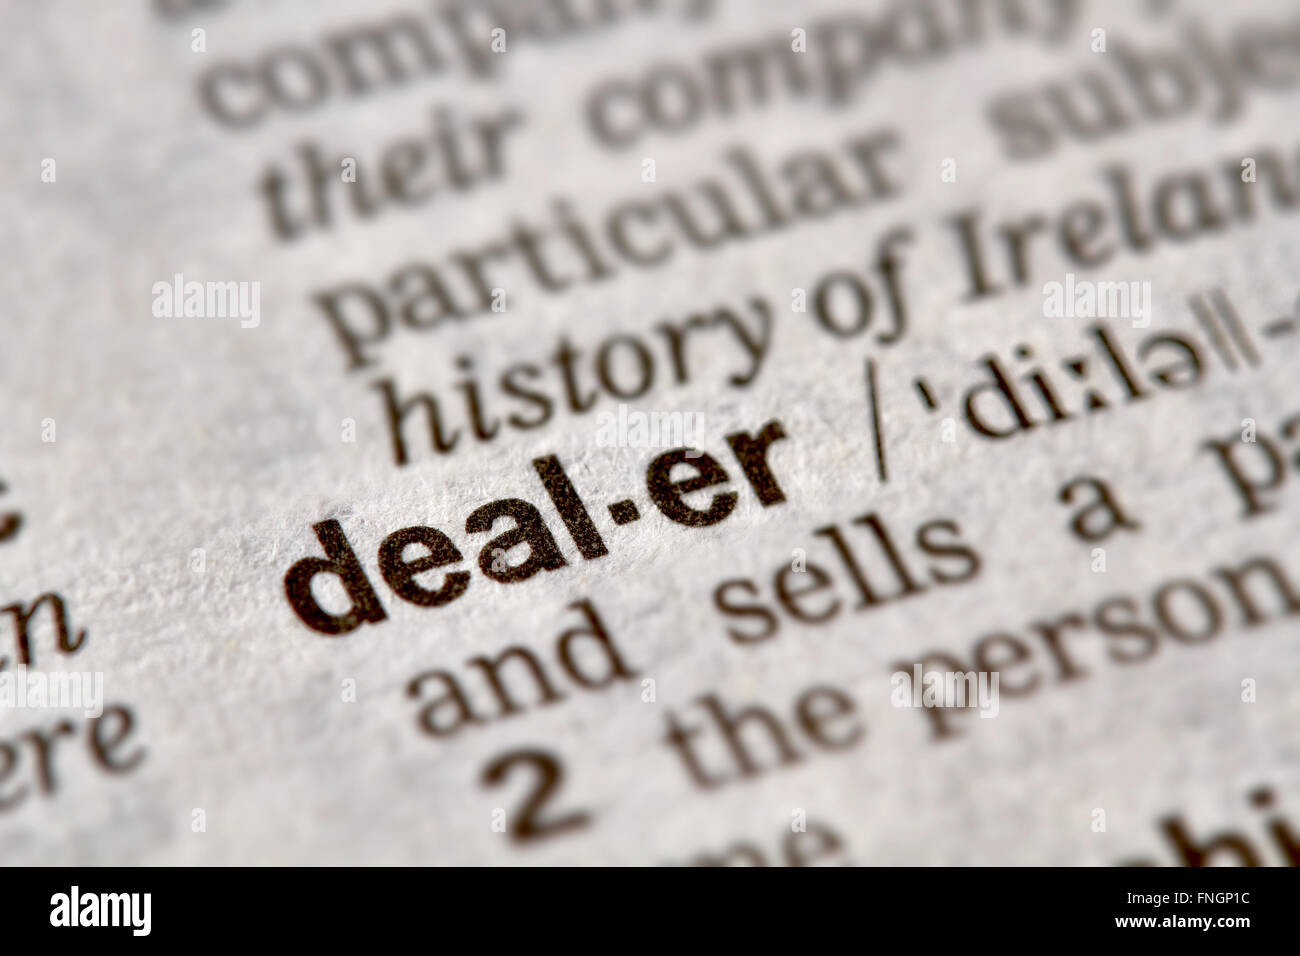 Dealer Word Definition Text in Dictionary Page - Stock Image